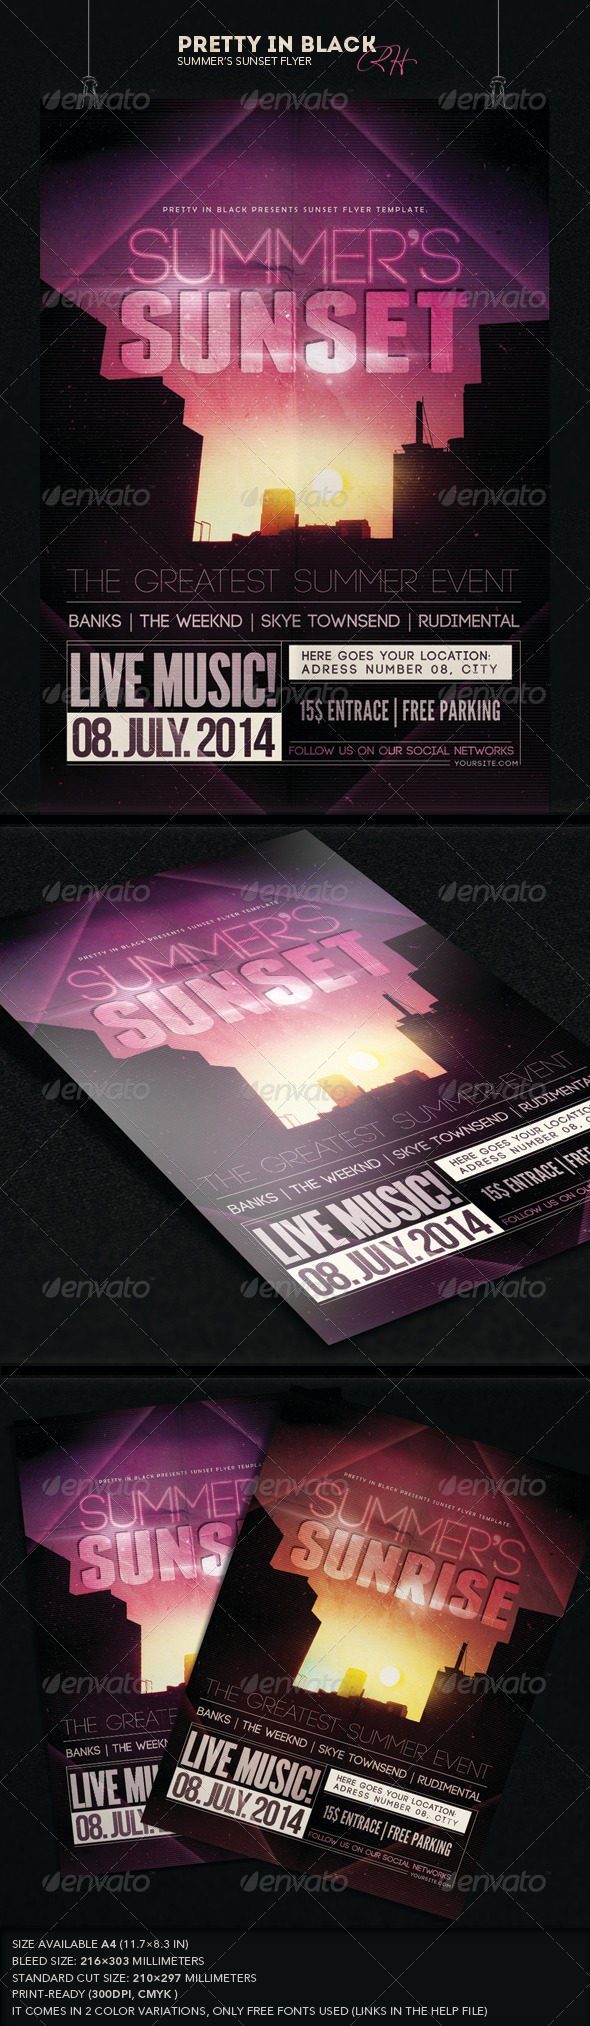 GraphicRiver Summer s Sunset Flyer 7828127